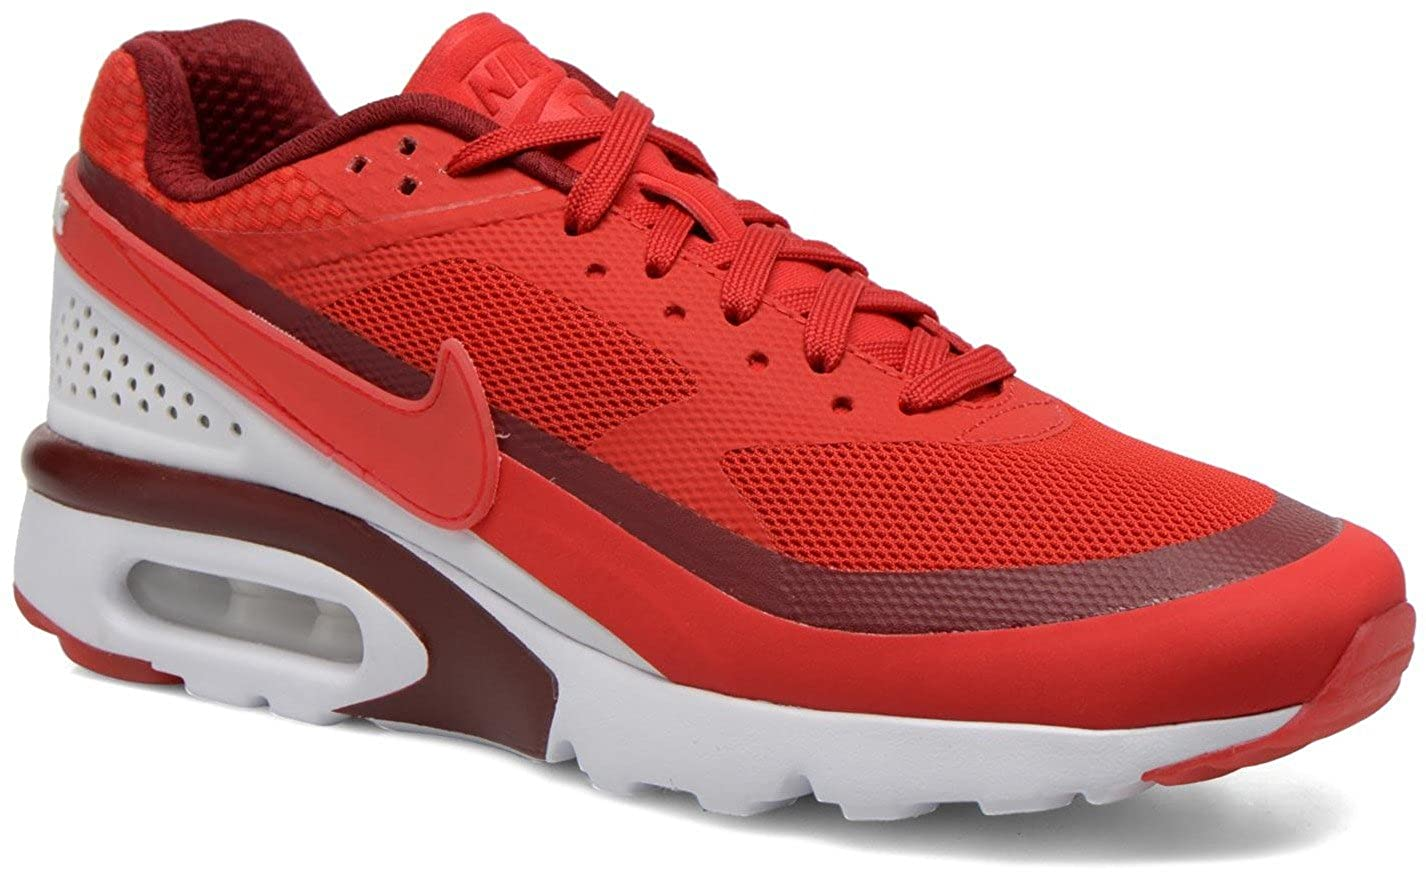 fecd6a370b Amazon.com | Nike Air Max BW Ultra Running Shoes 7.5 University Red, Bright  Red 819475-616 | Running